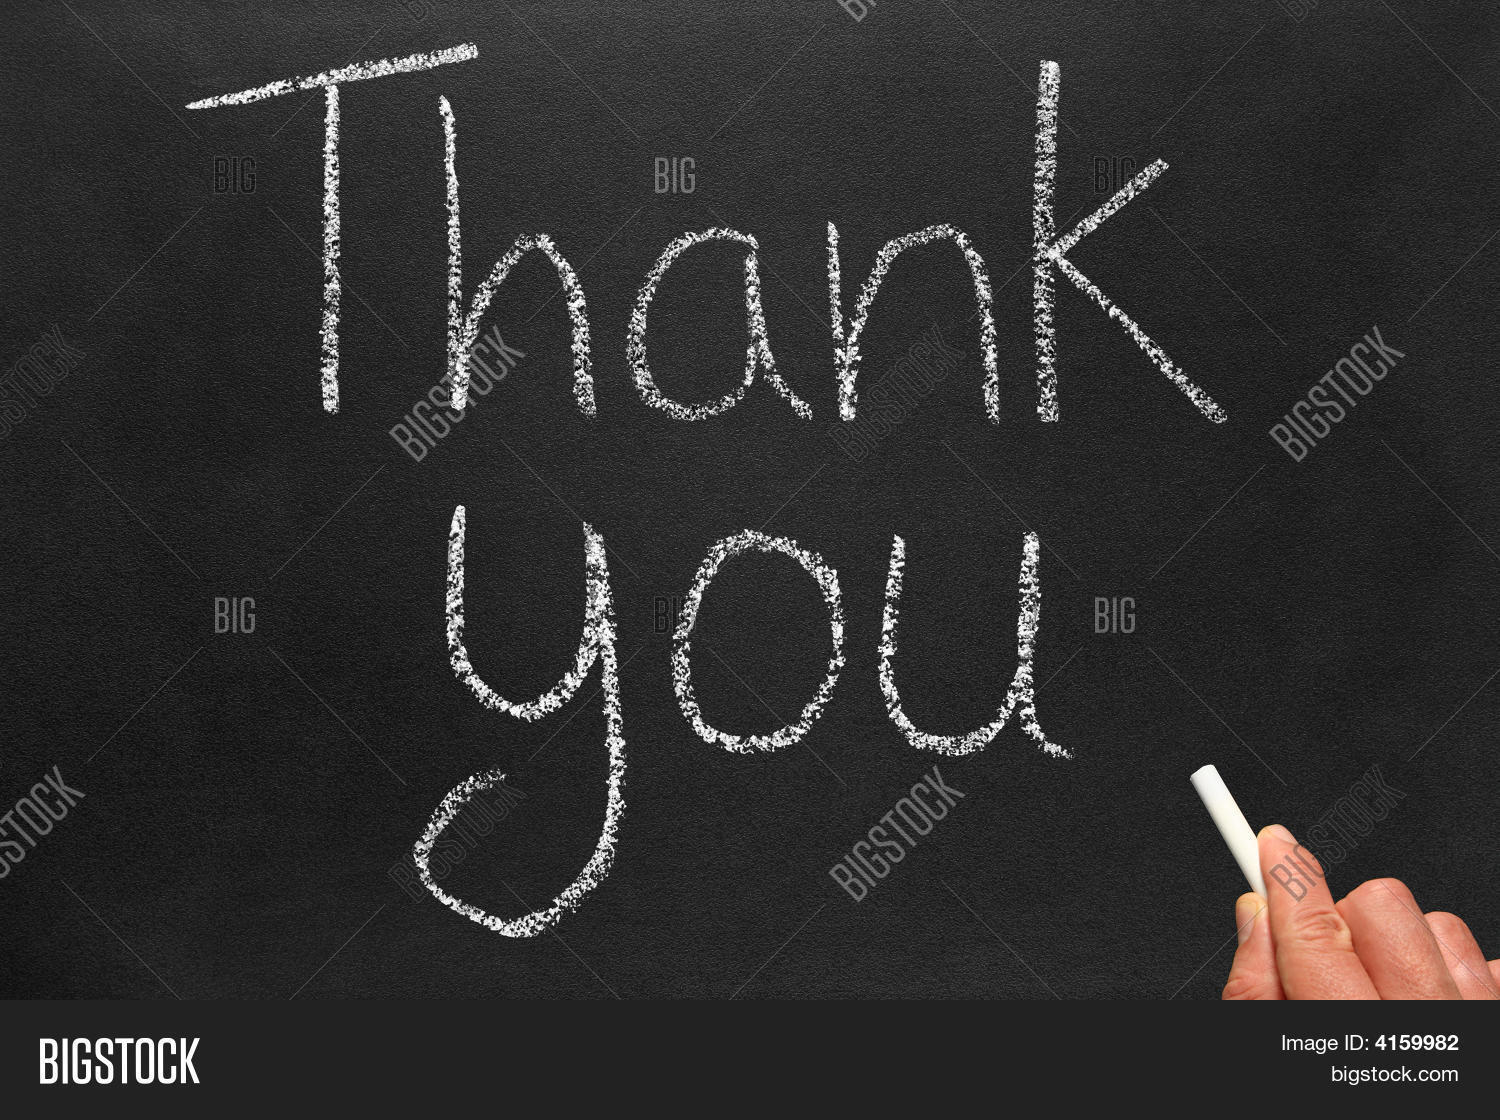 appreciation,black,blackboard,chalk,communication,fingers,hand,handwriting,manners,message,polite,politeness,remark,sign,text,thank,thankful,thank you,white,word,write,written,you